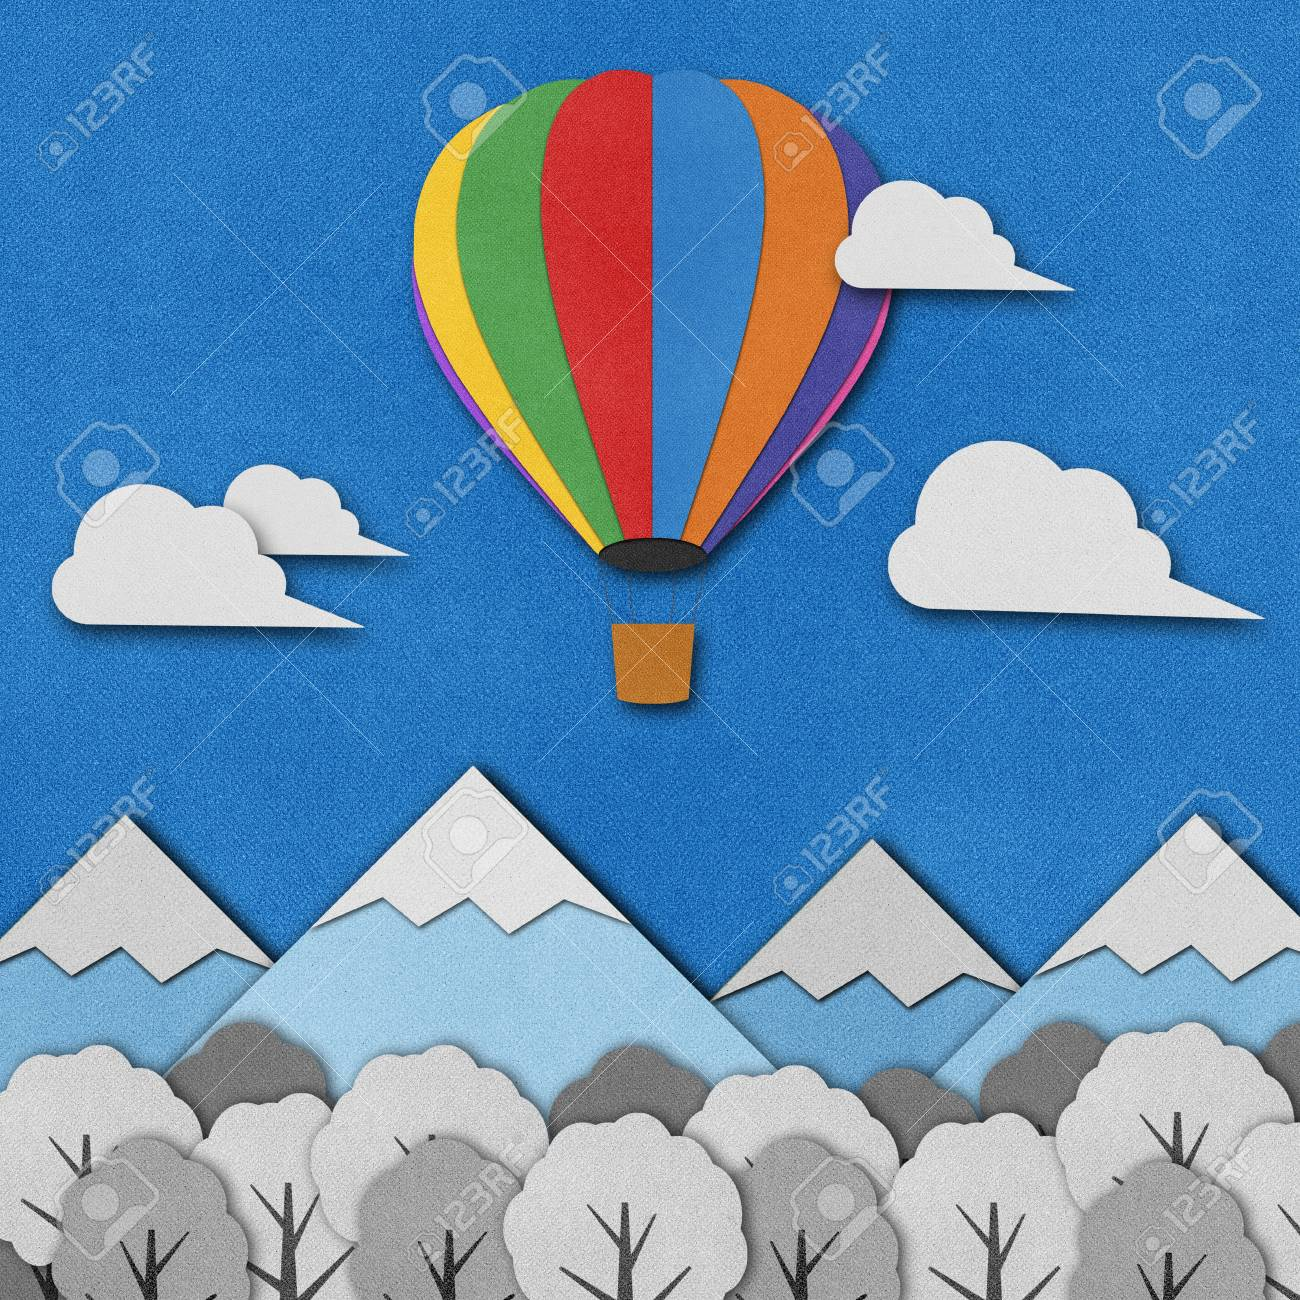 Balloon made from recycled paper background. Stock Photo - 15862237